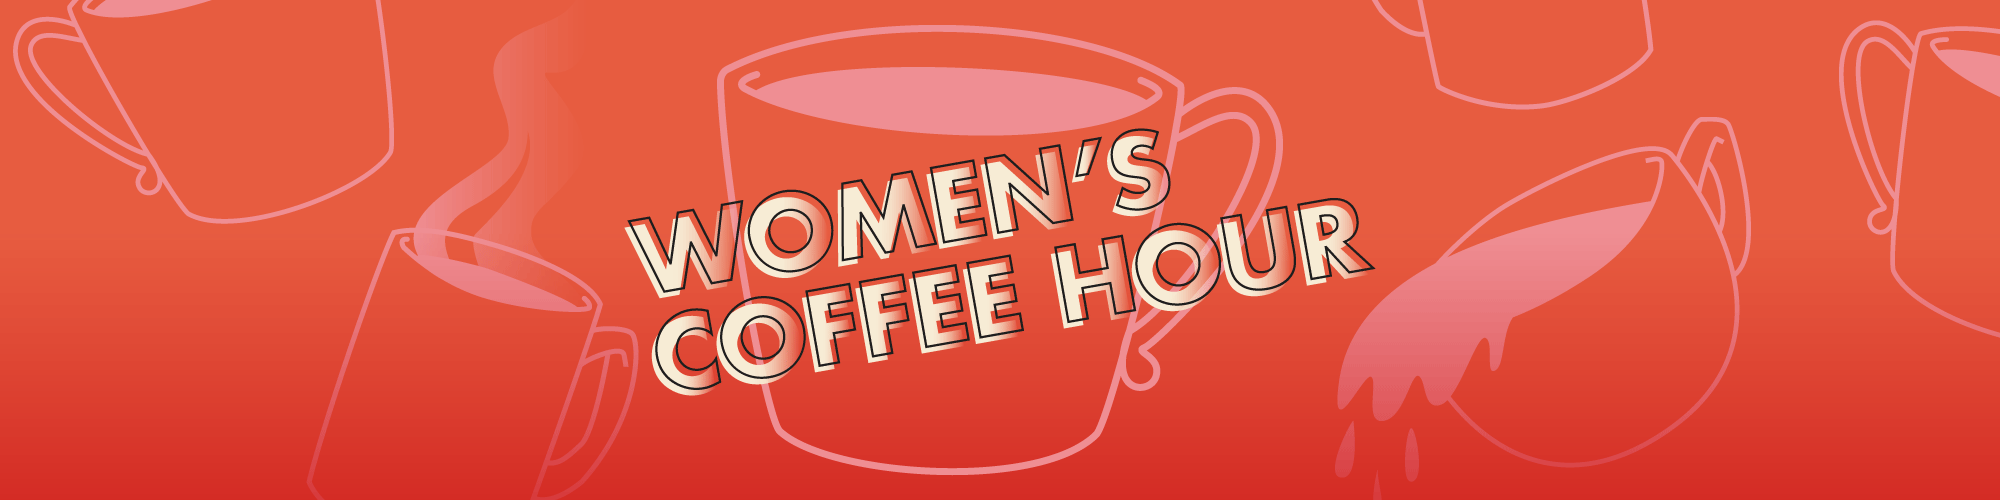 Women's Coffee Hour